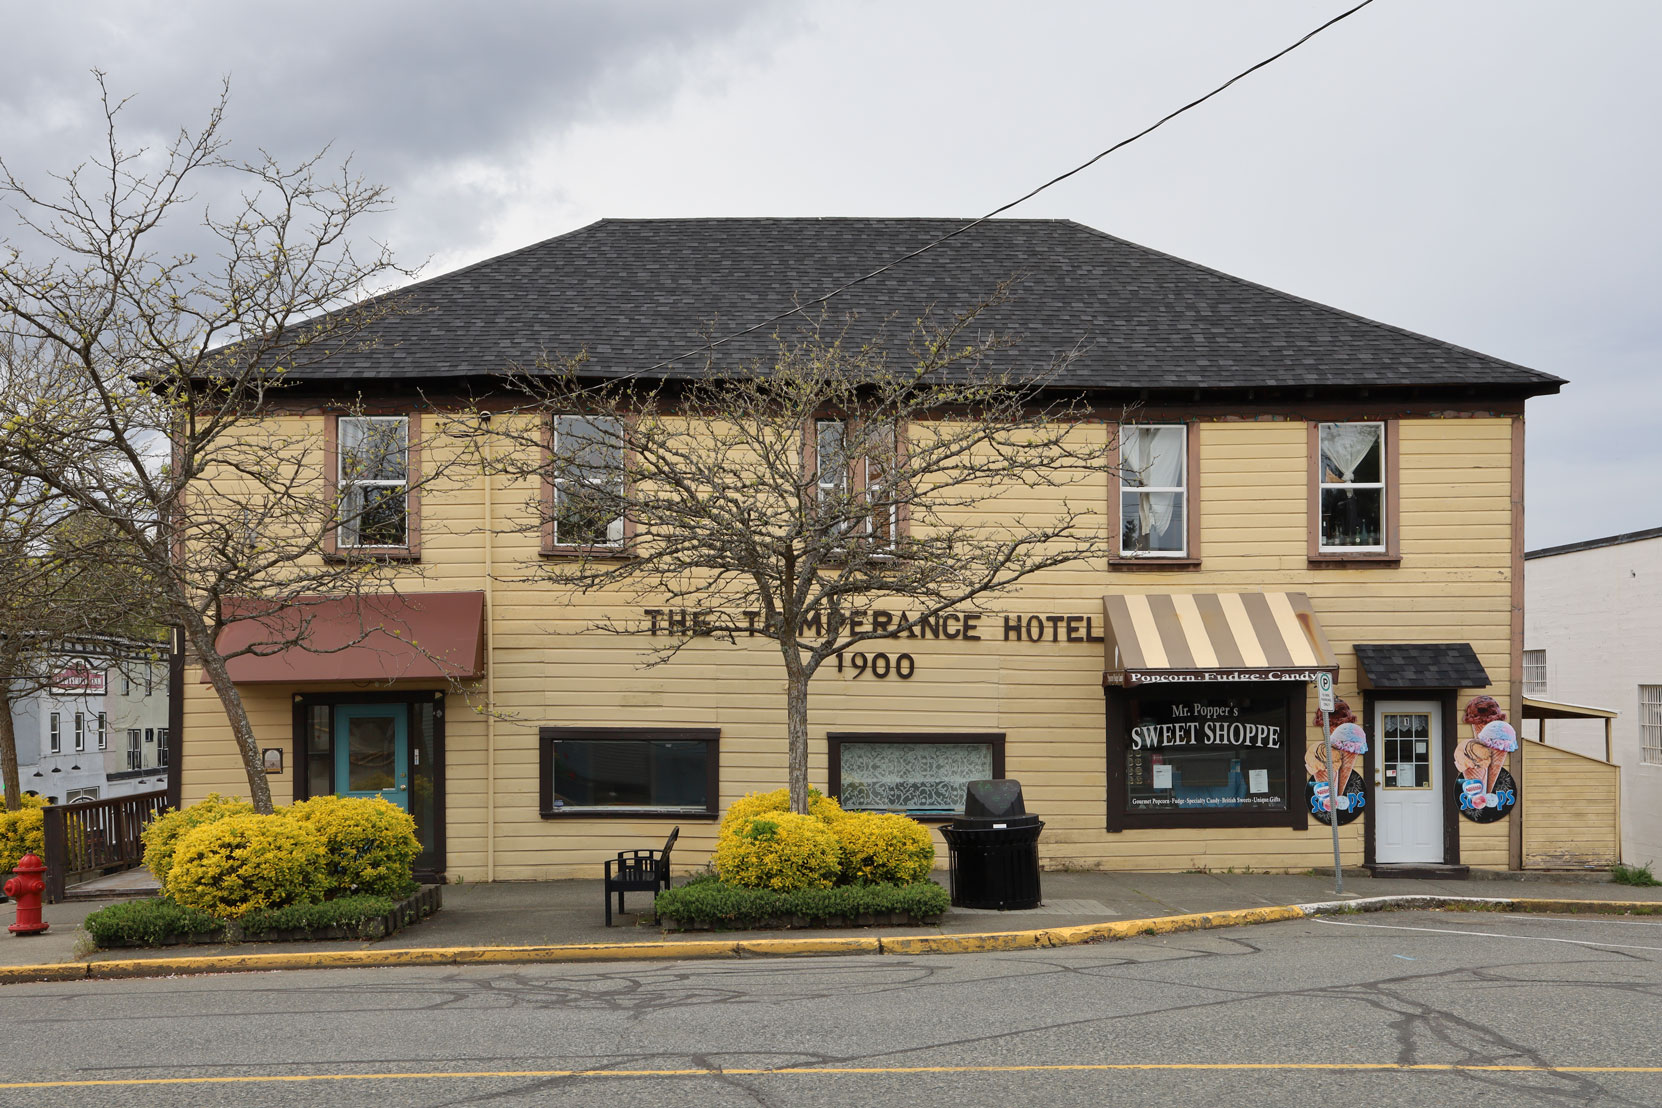 32 High Street in downtown Ladysmith was originally built in 1904 as the Temperance Hotel.